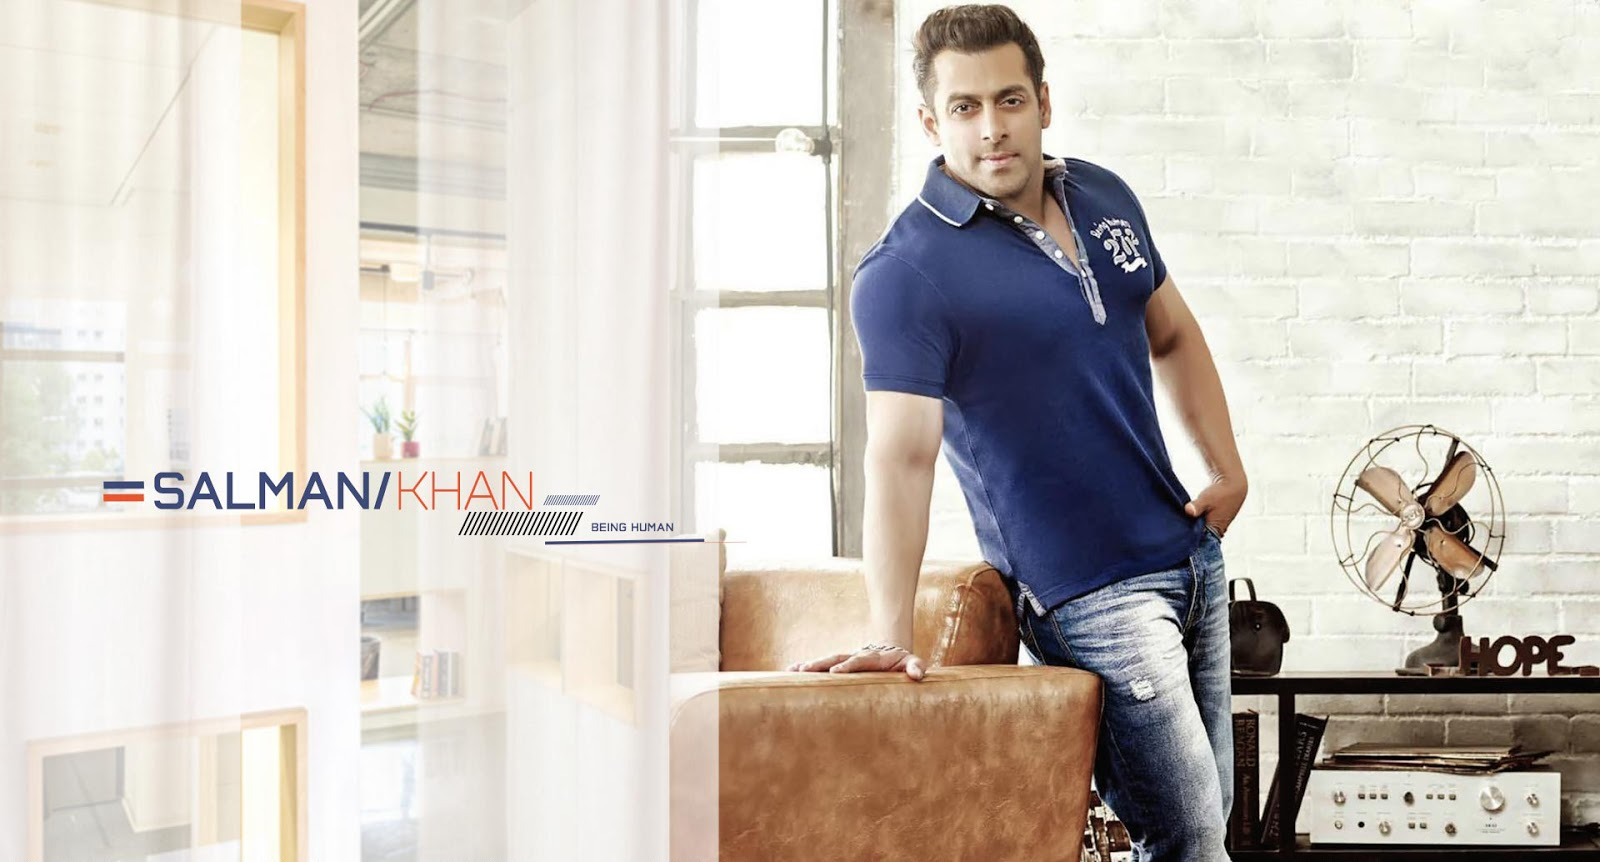 Salman Khan Images Download Pictures  Hd Wallpapers-9961